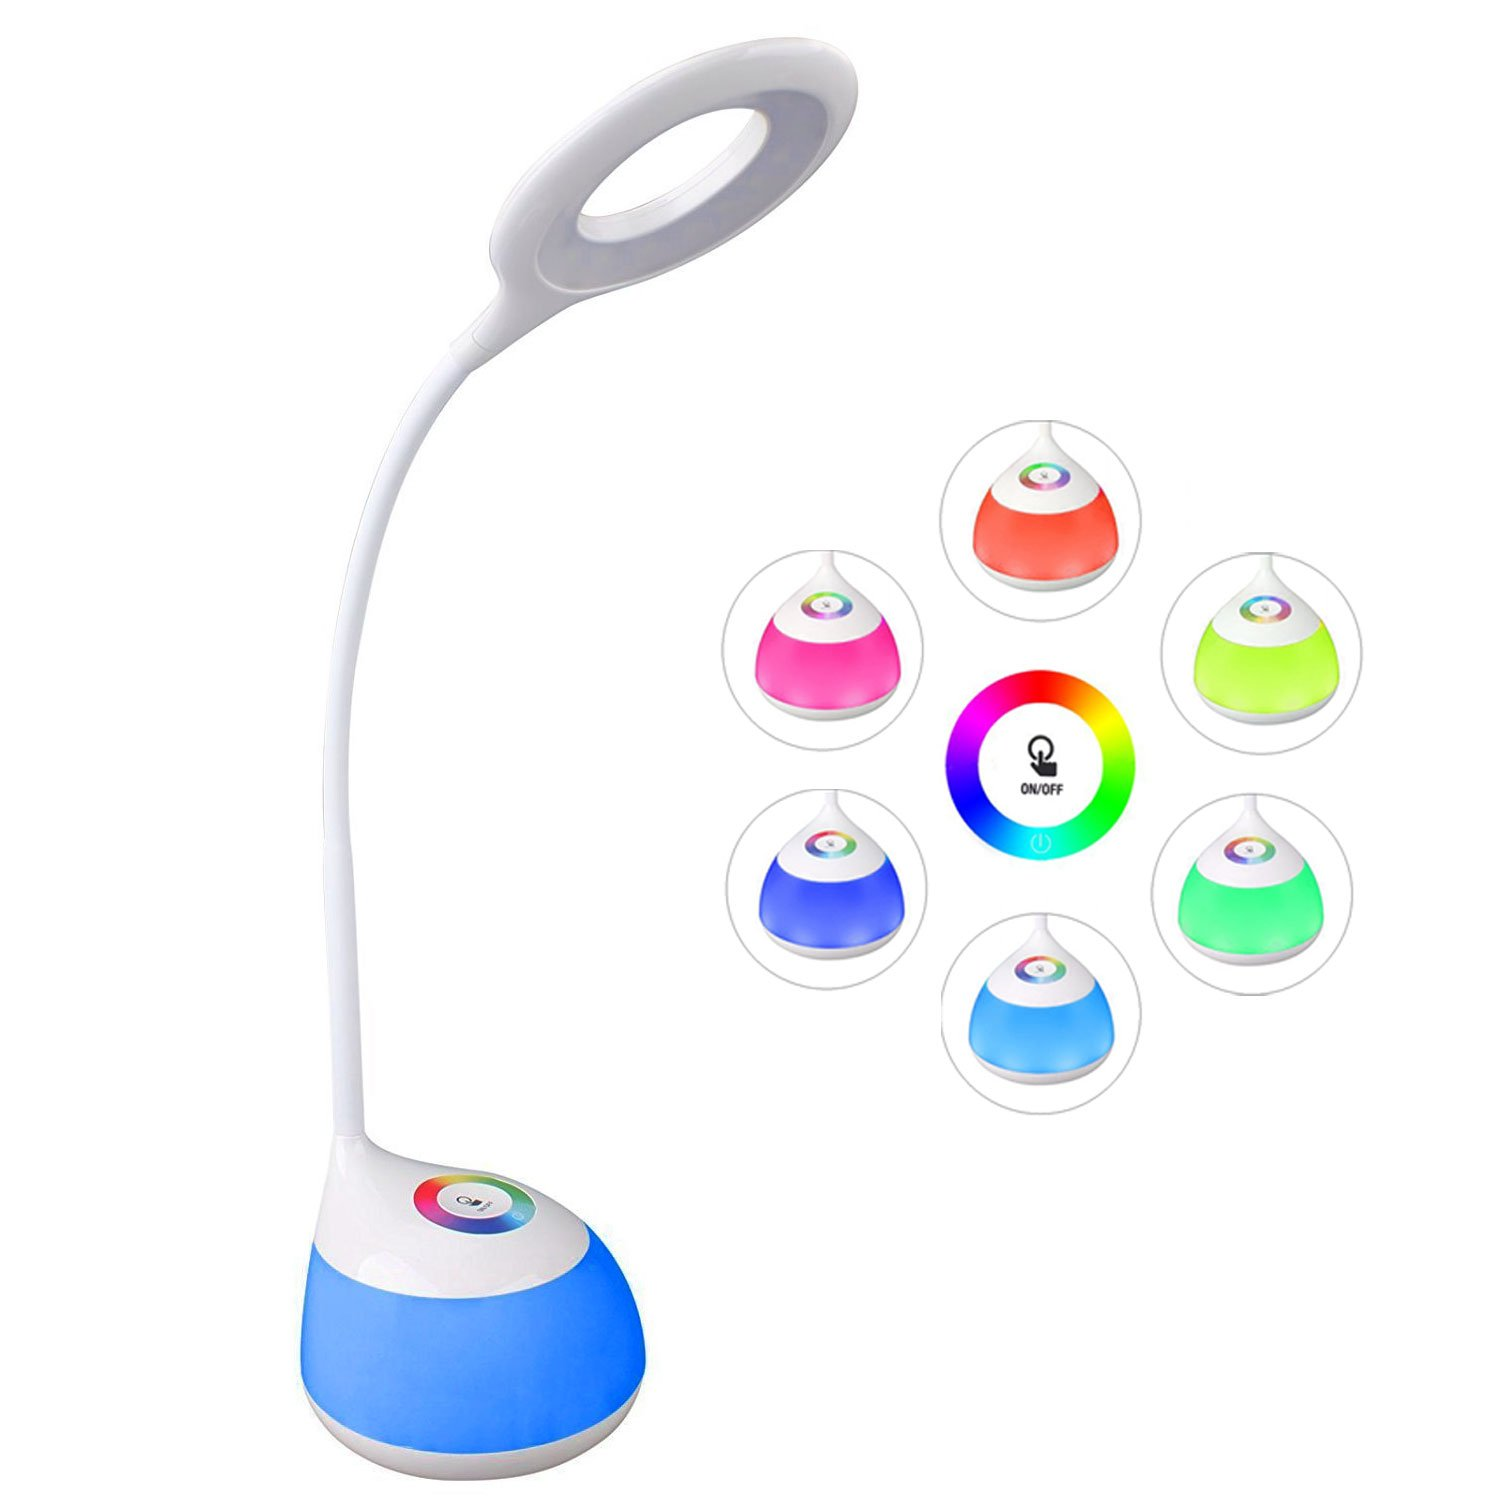 Study Desk Lamp, RGB Color Changing Nightlight, Touch Controlled, 256 Colors, 3-level Brightness Adjustment, USB Rechargeable, Led Eye-caring Mushroom Lamps